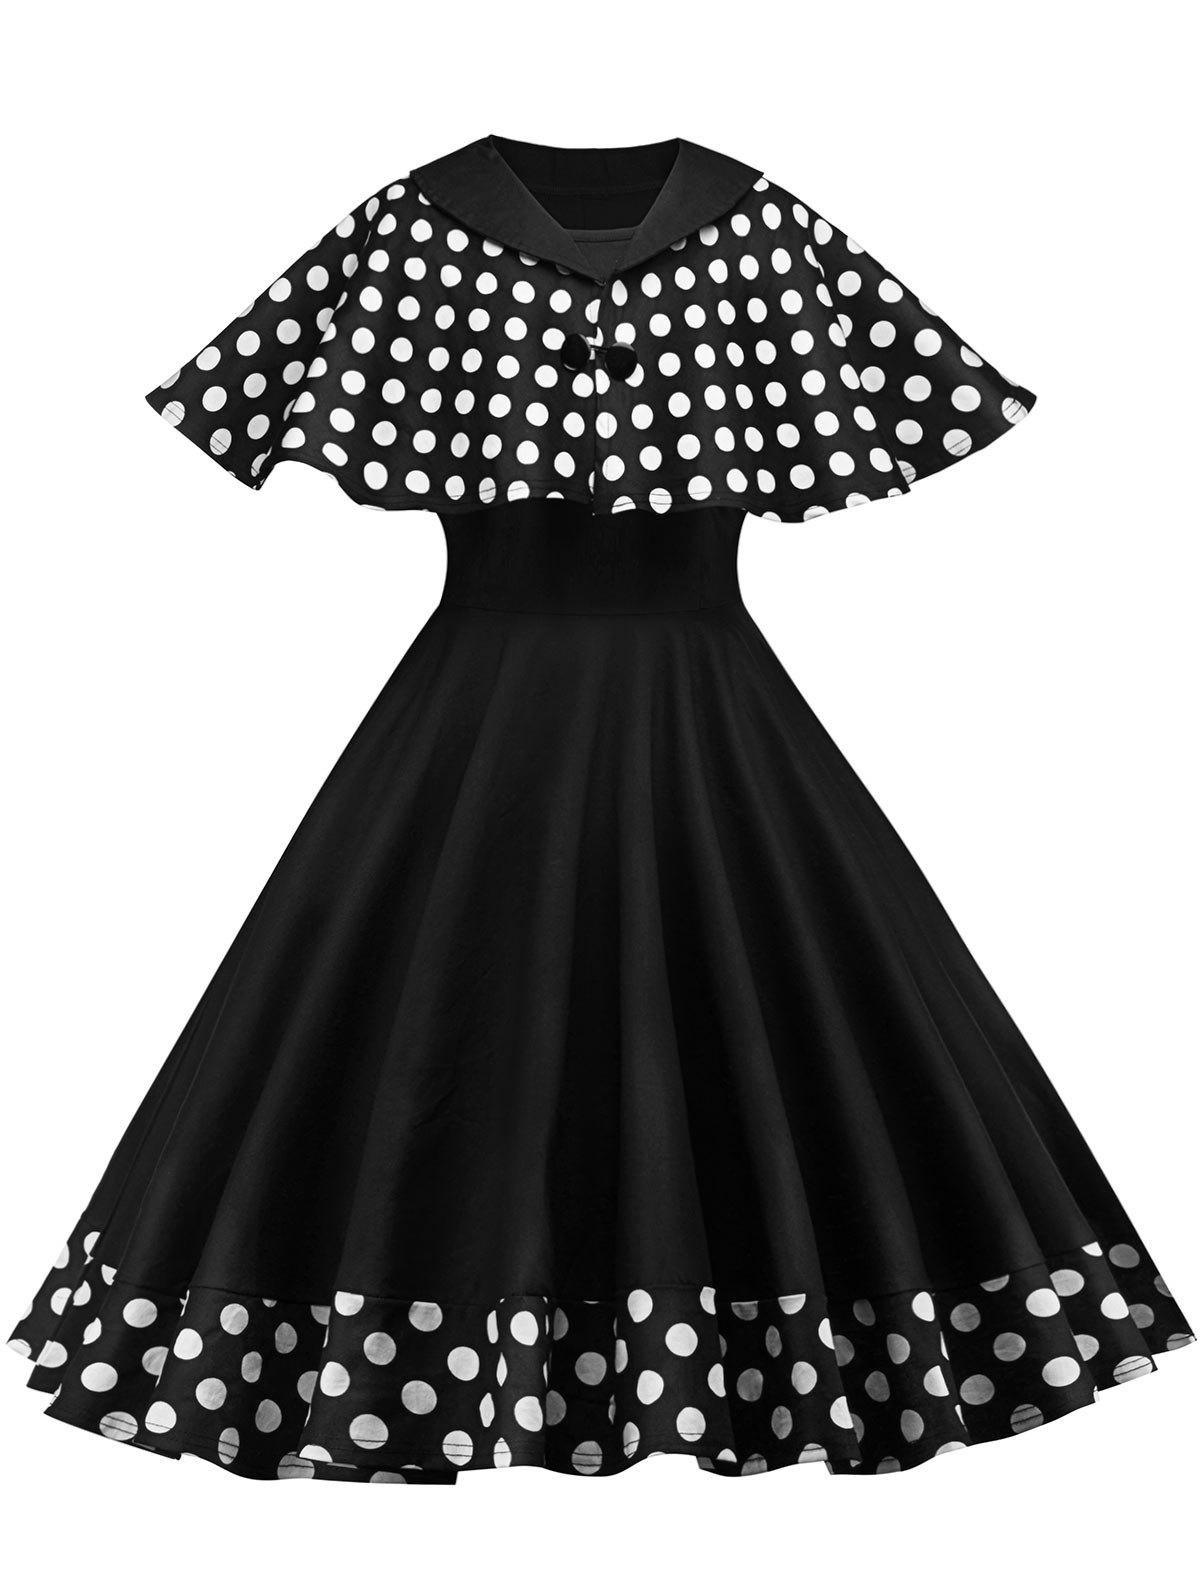 Best Vintage Pin Up Dress With Polka Dot Cape